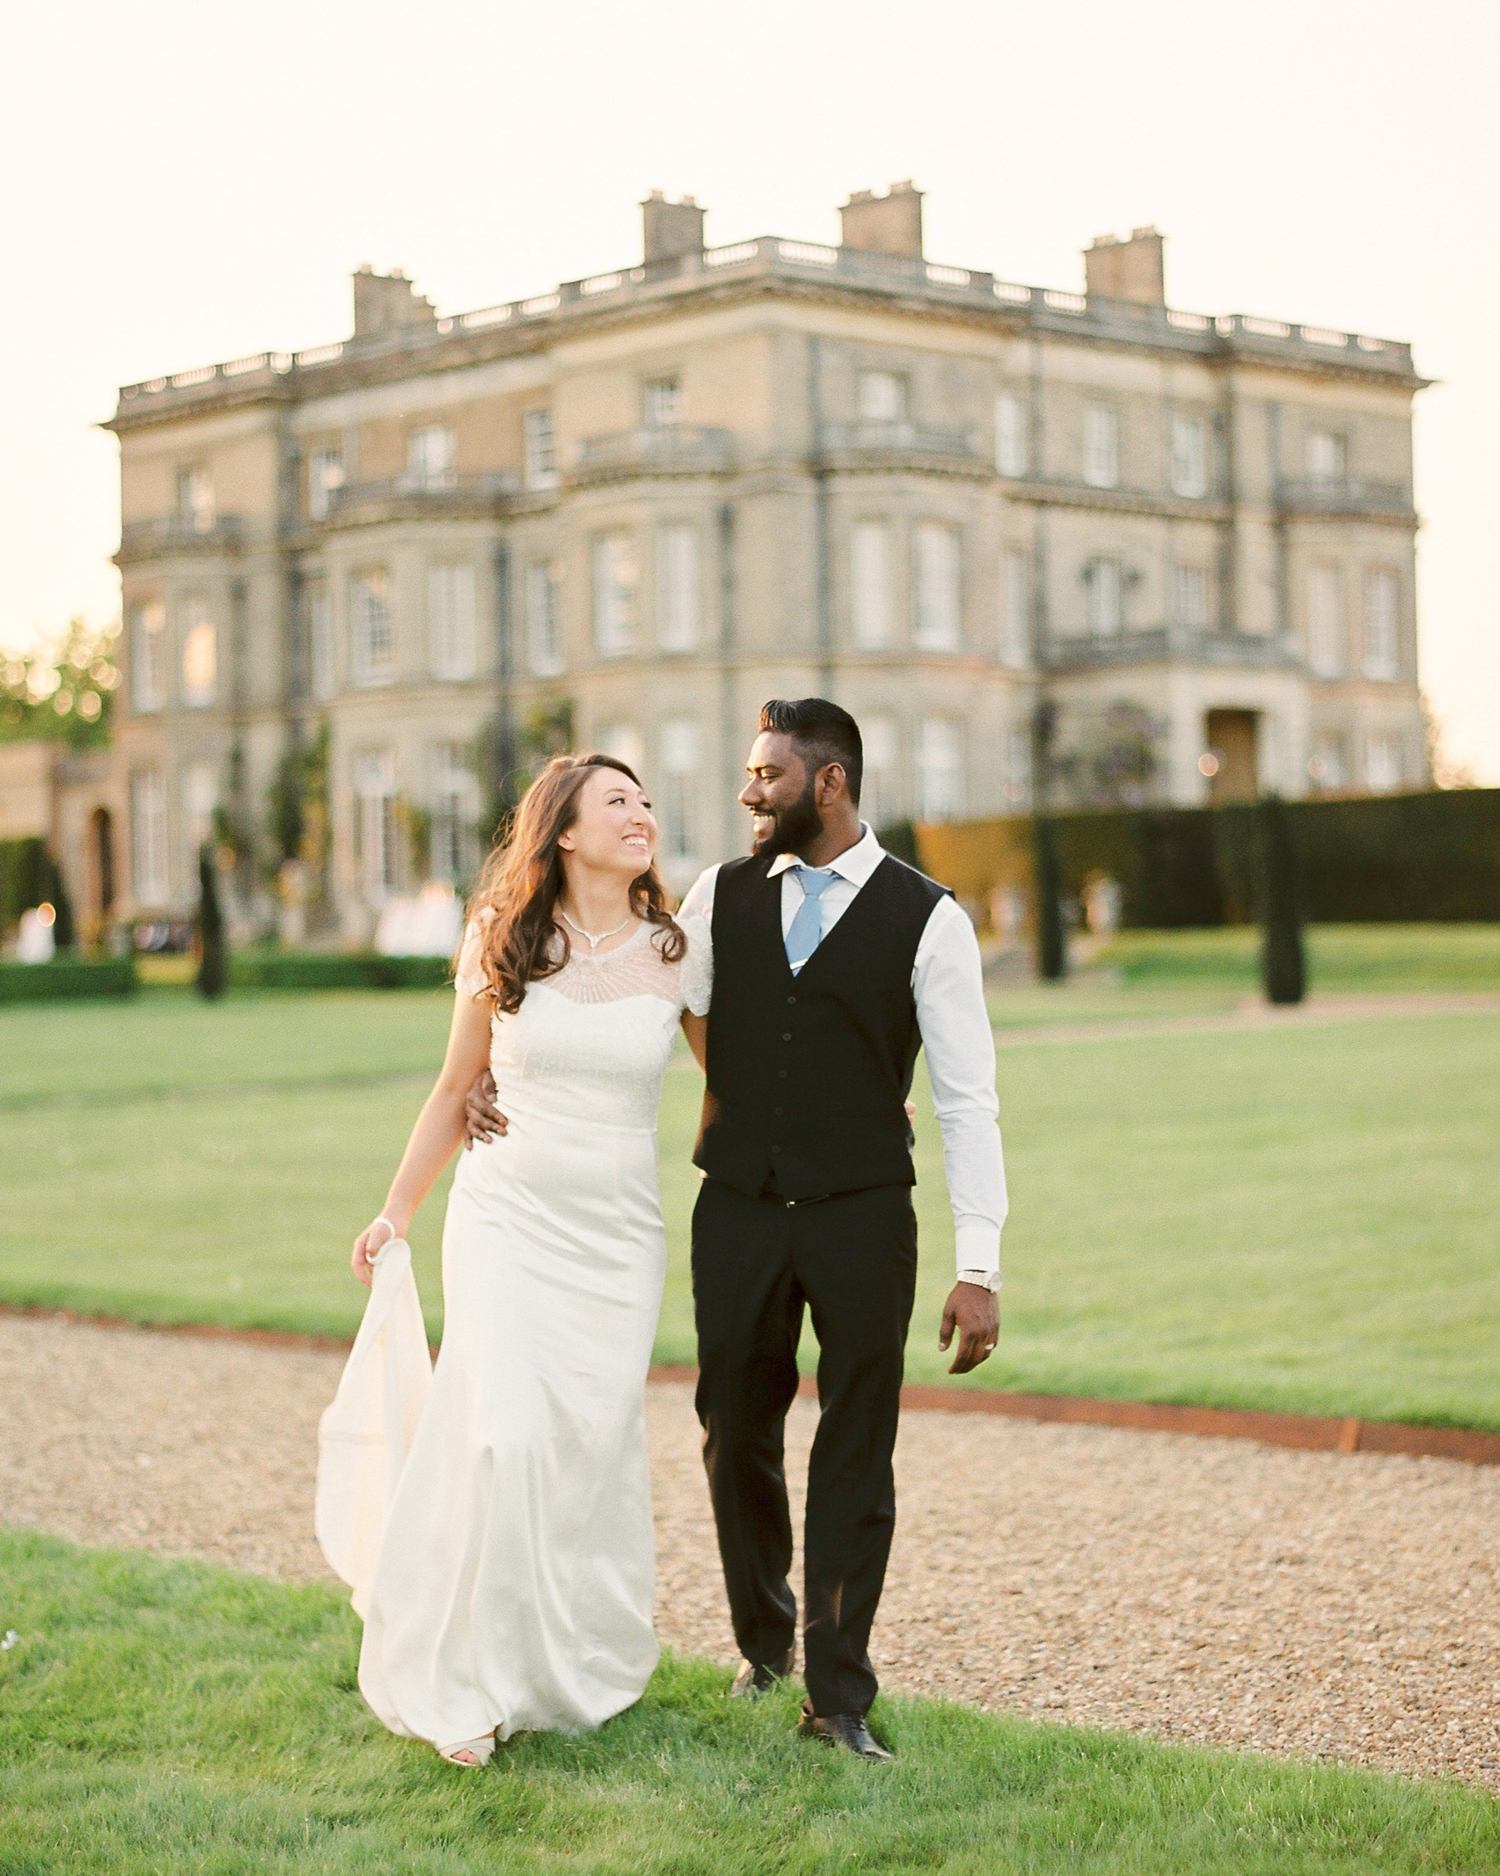 sunset wedding photos bride and groom walking in front of estate venue